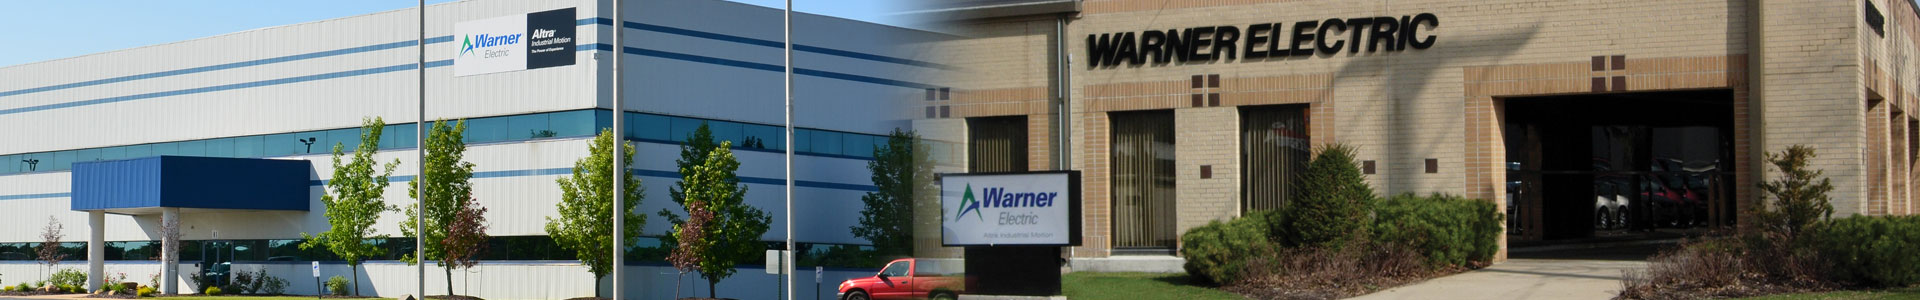 Warner Electric Locations